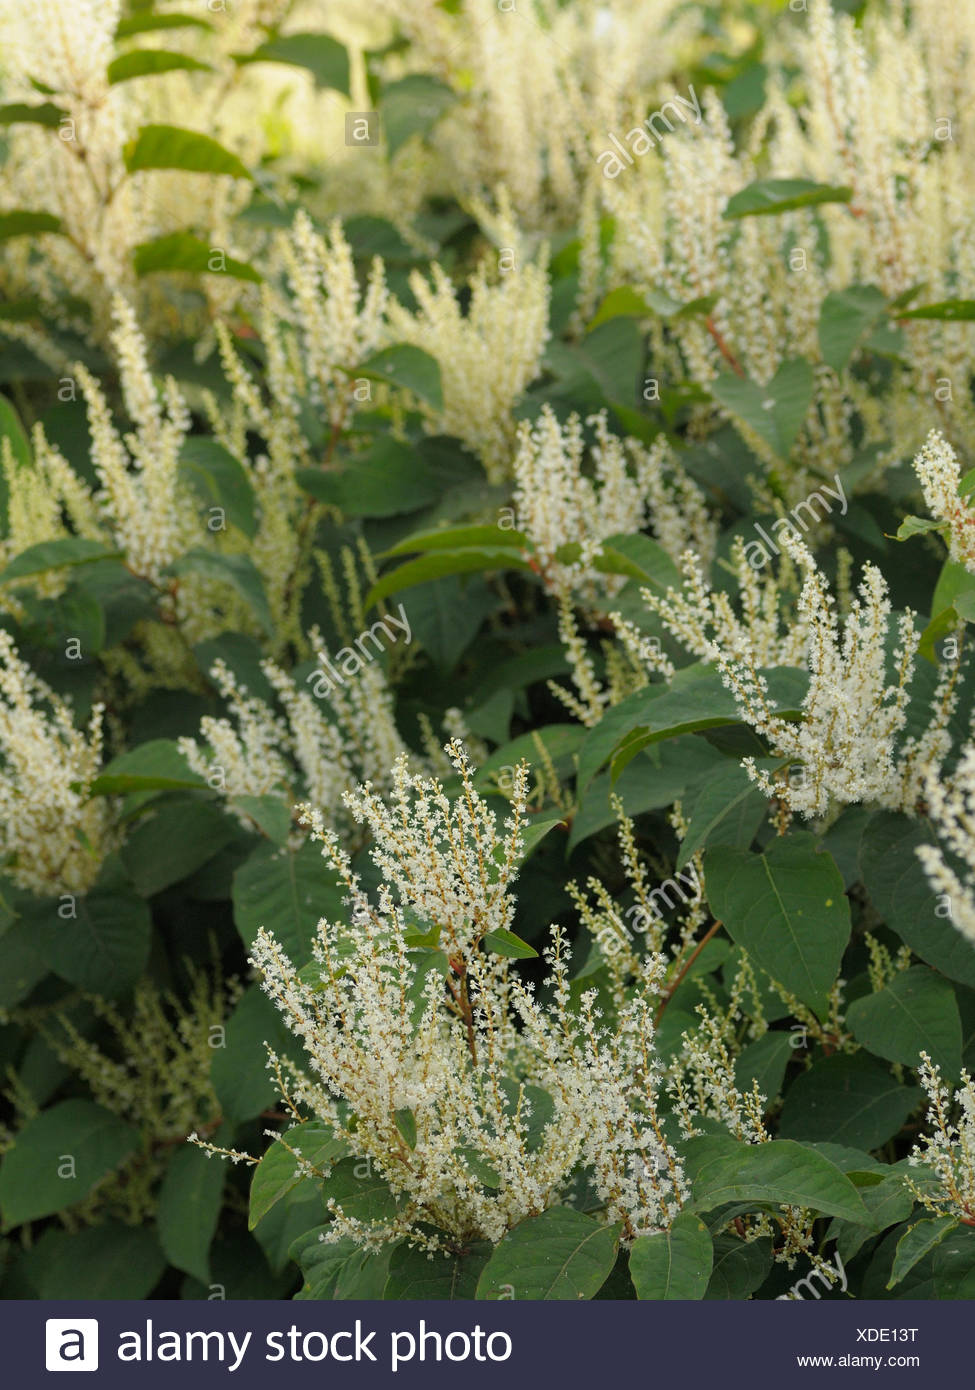 Japanese knotweed (Fallopia japonica) native to Eastern Asia In Europe species very successful has been classified as invasive - Stock Image